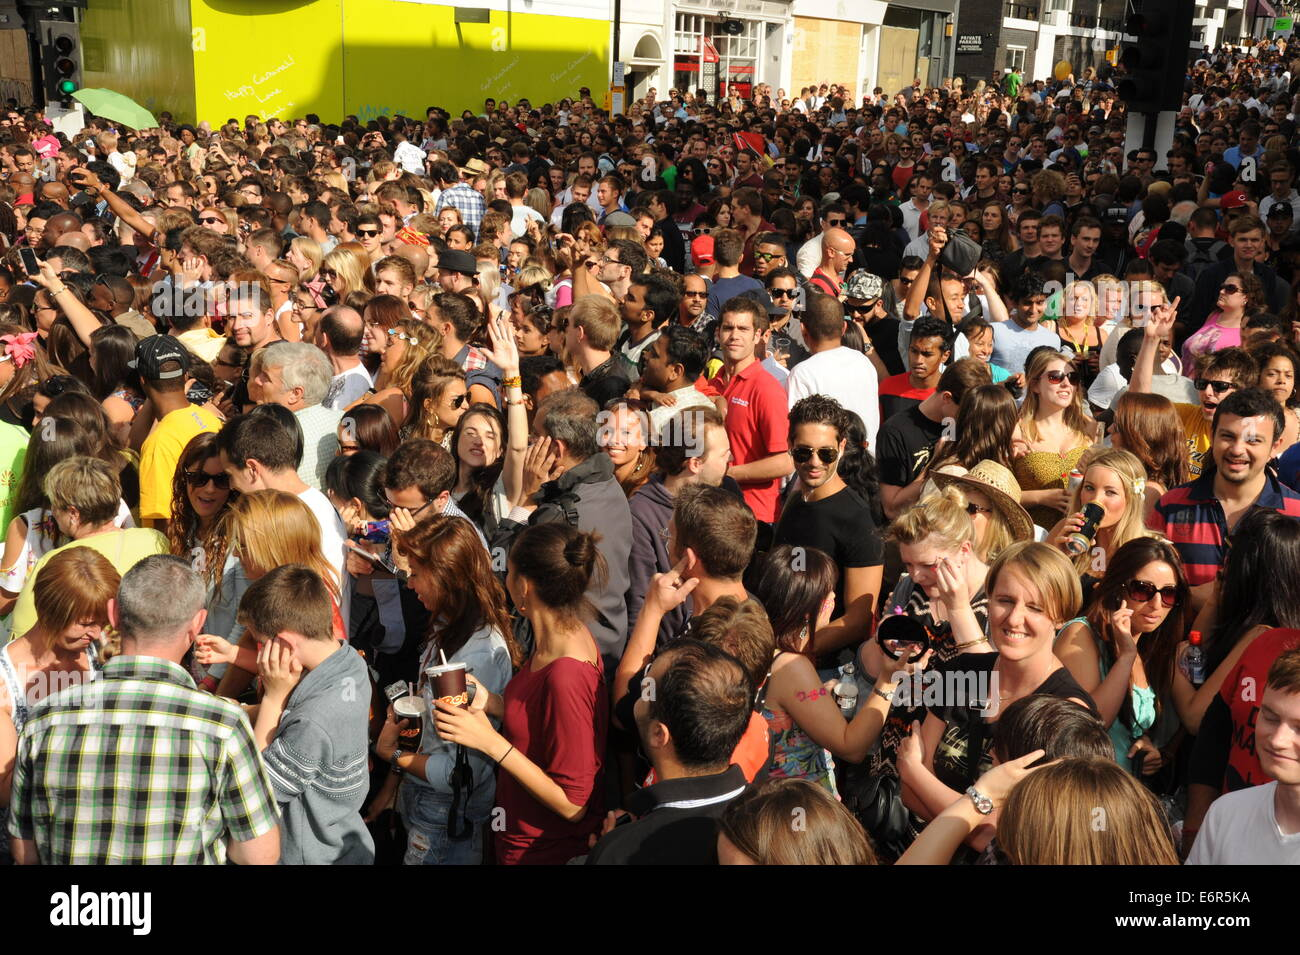 Crowds at Notting Hill Carnival - Stock Image